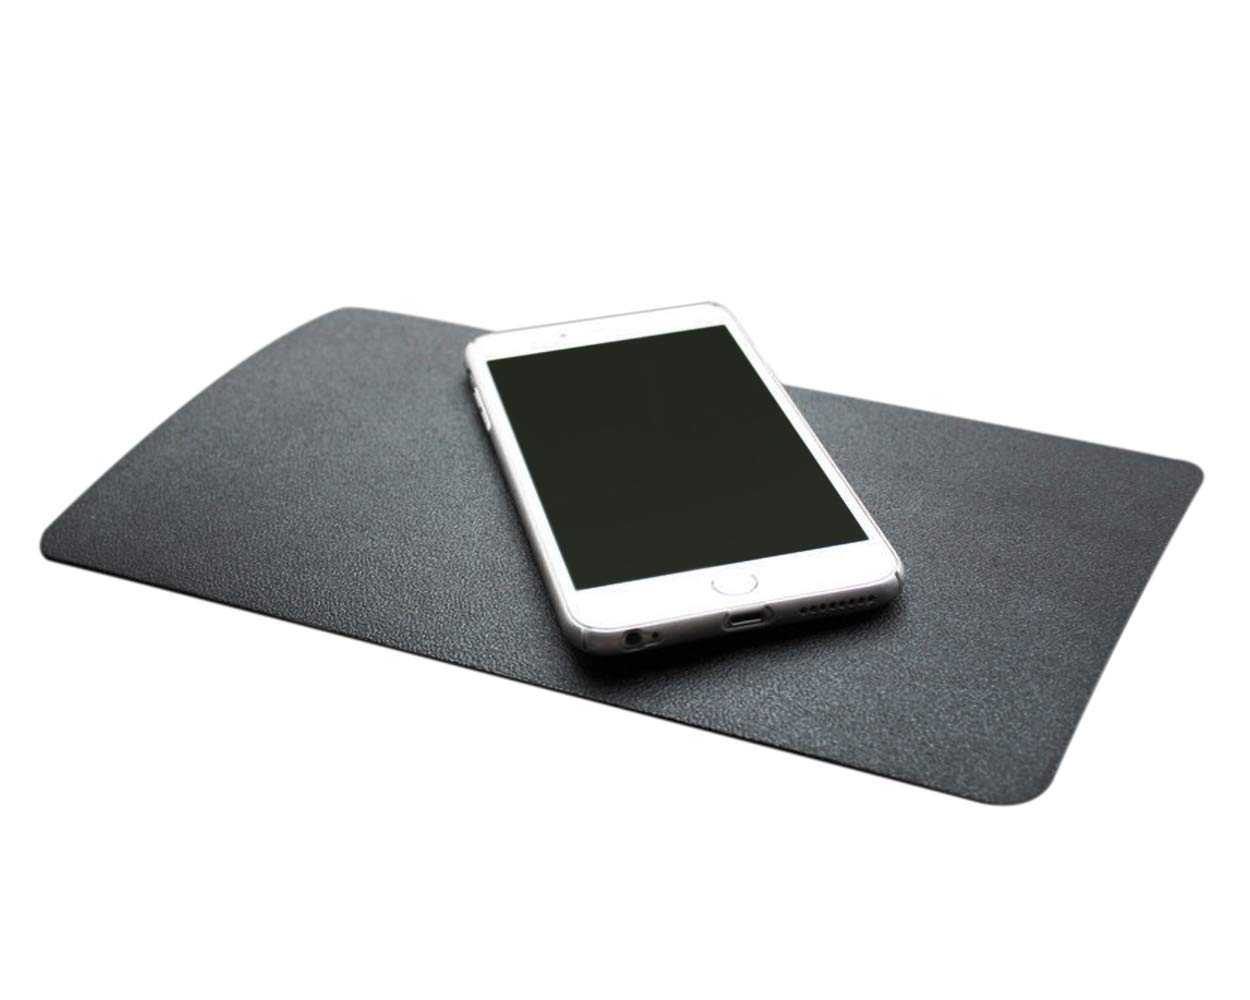 distinctive style Car Dashboard Mat 10.5x5.9 Inches Extra Large Non-slip Sticky Pad Anti Slip Mat Adhesive Mat for Phones Dot Glasses Keys ds